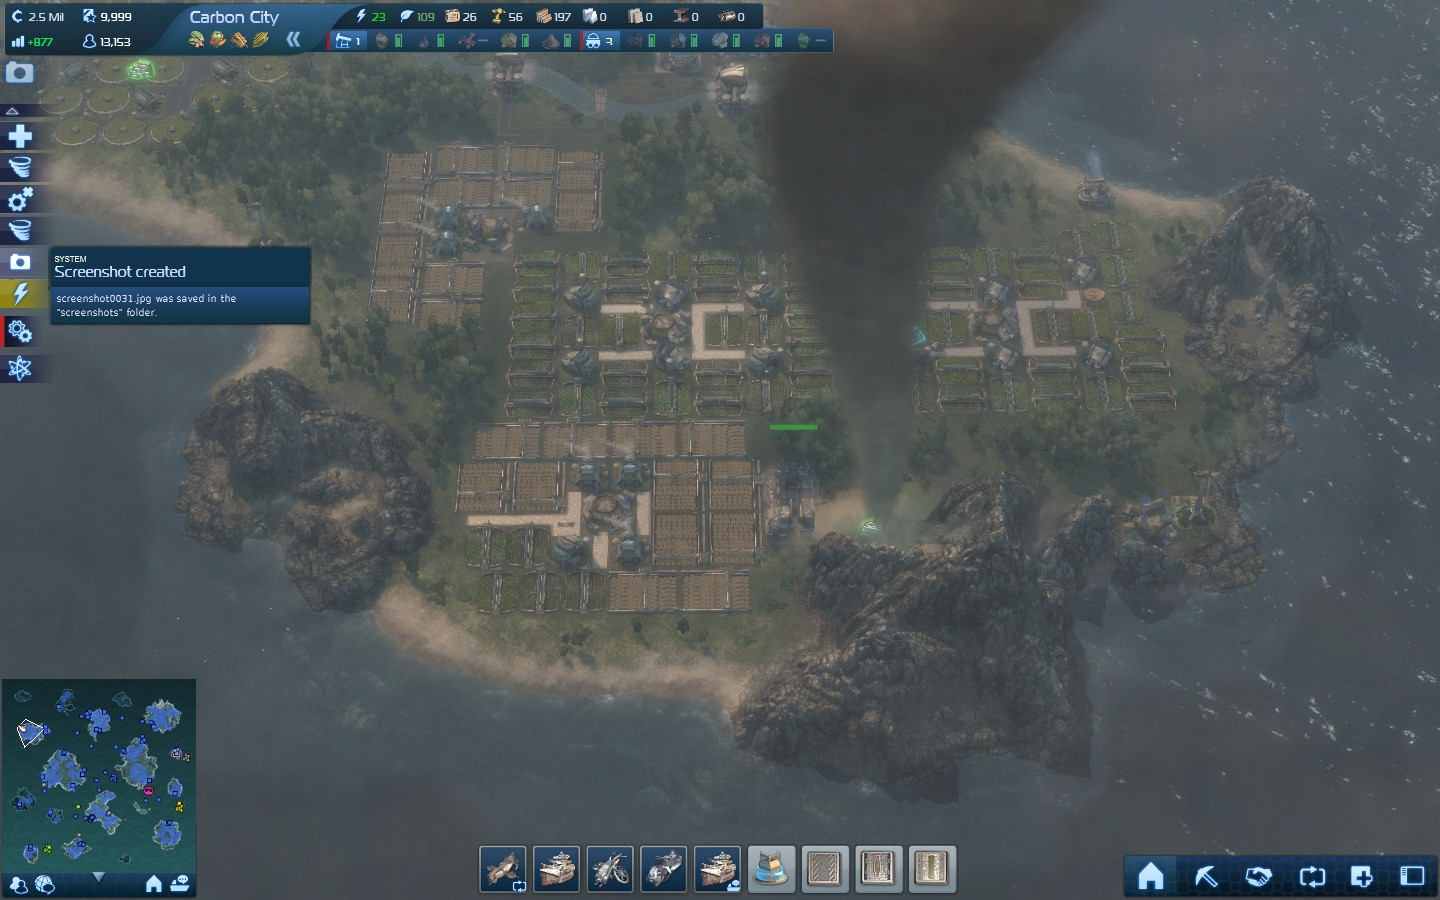 Disasters anno 2070 wiki fandom powered by wikia there are three kinds of disasters in anno 2070 city disasters environmental disasters and technological disasters on this page you will find an gumiabroncs Images